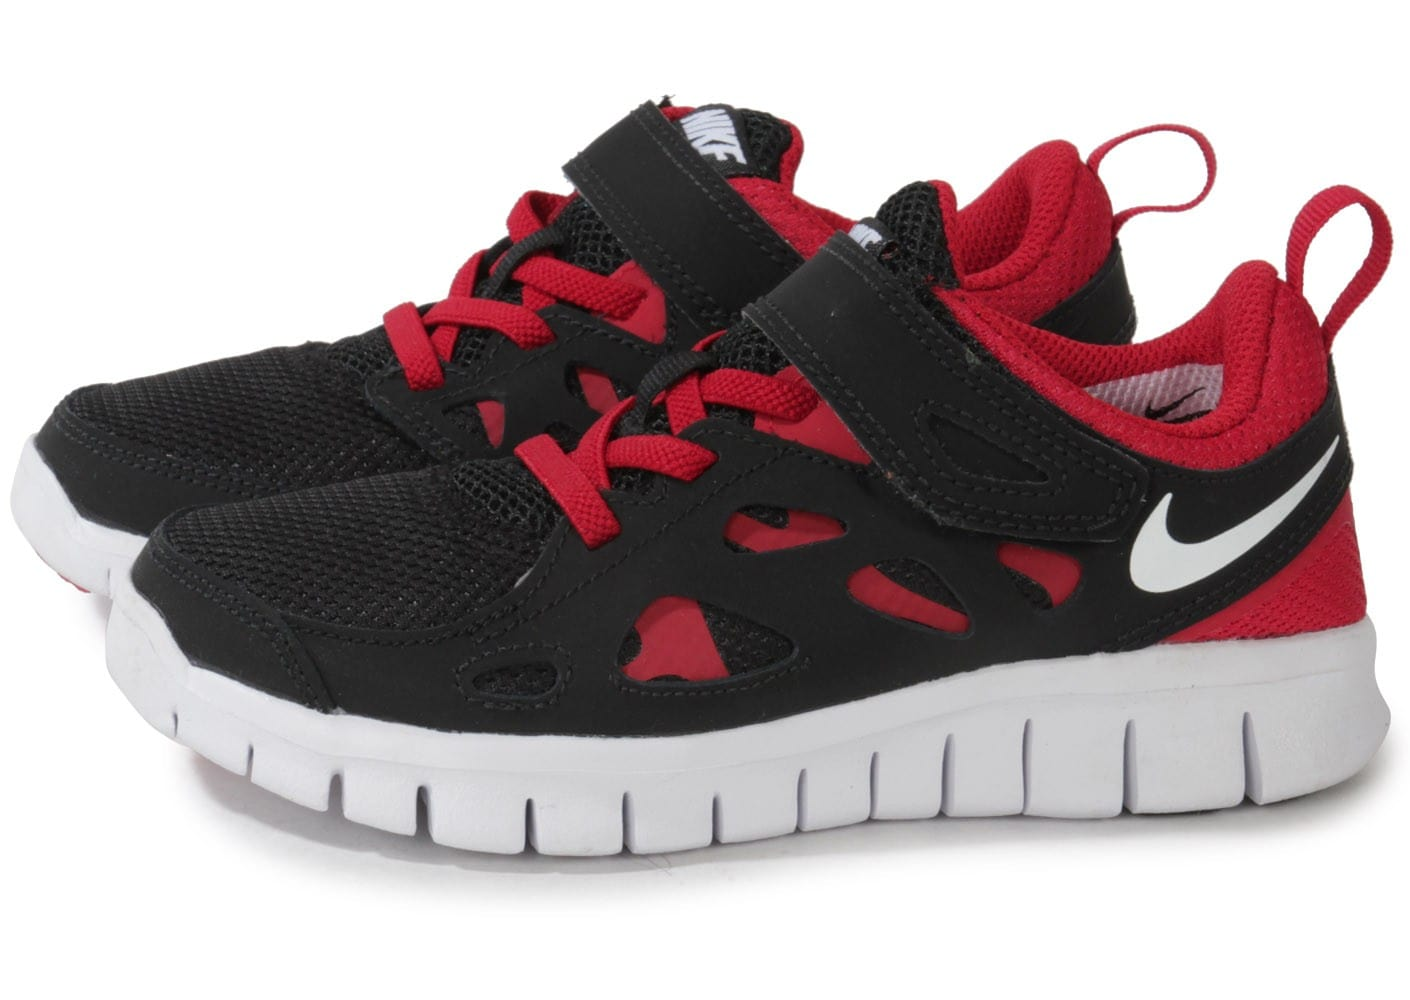 Free Chausport Enfant Noire Chaussures Nike Rouge Run O4wTqY7wB